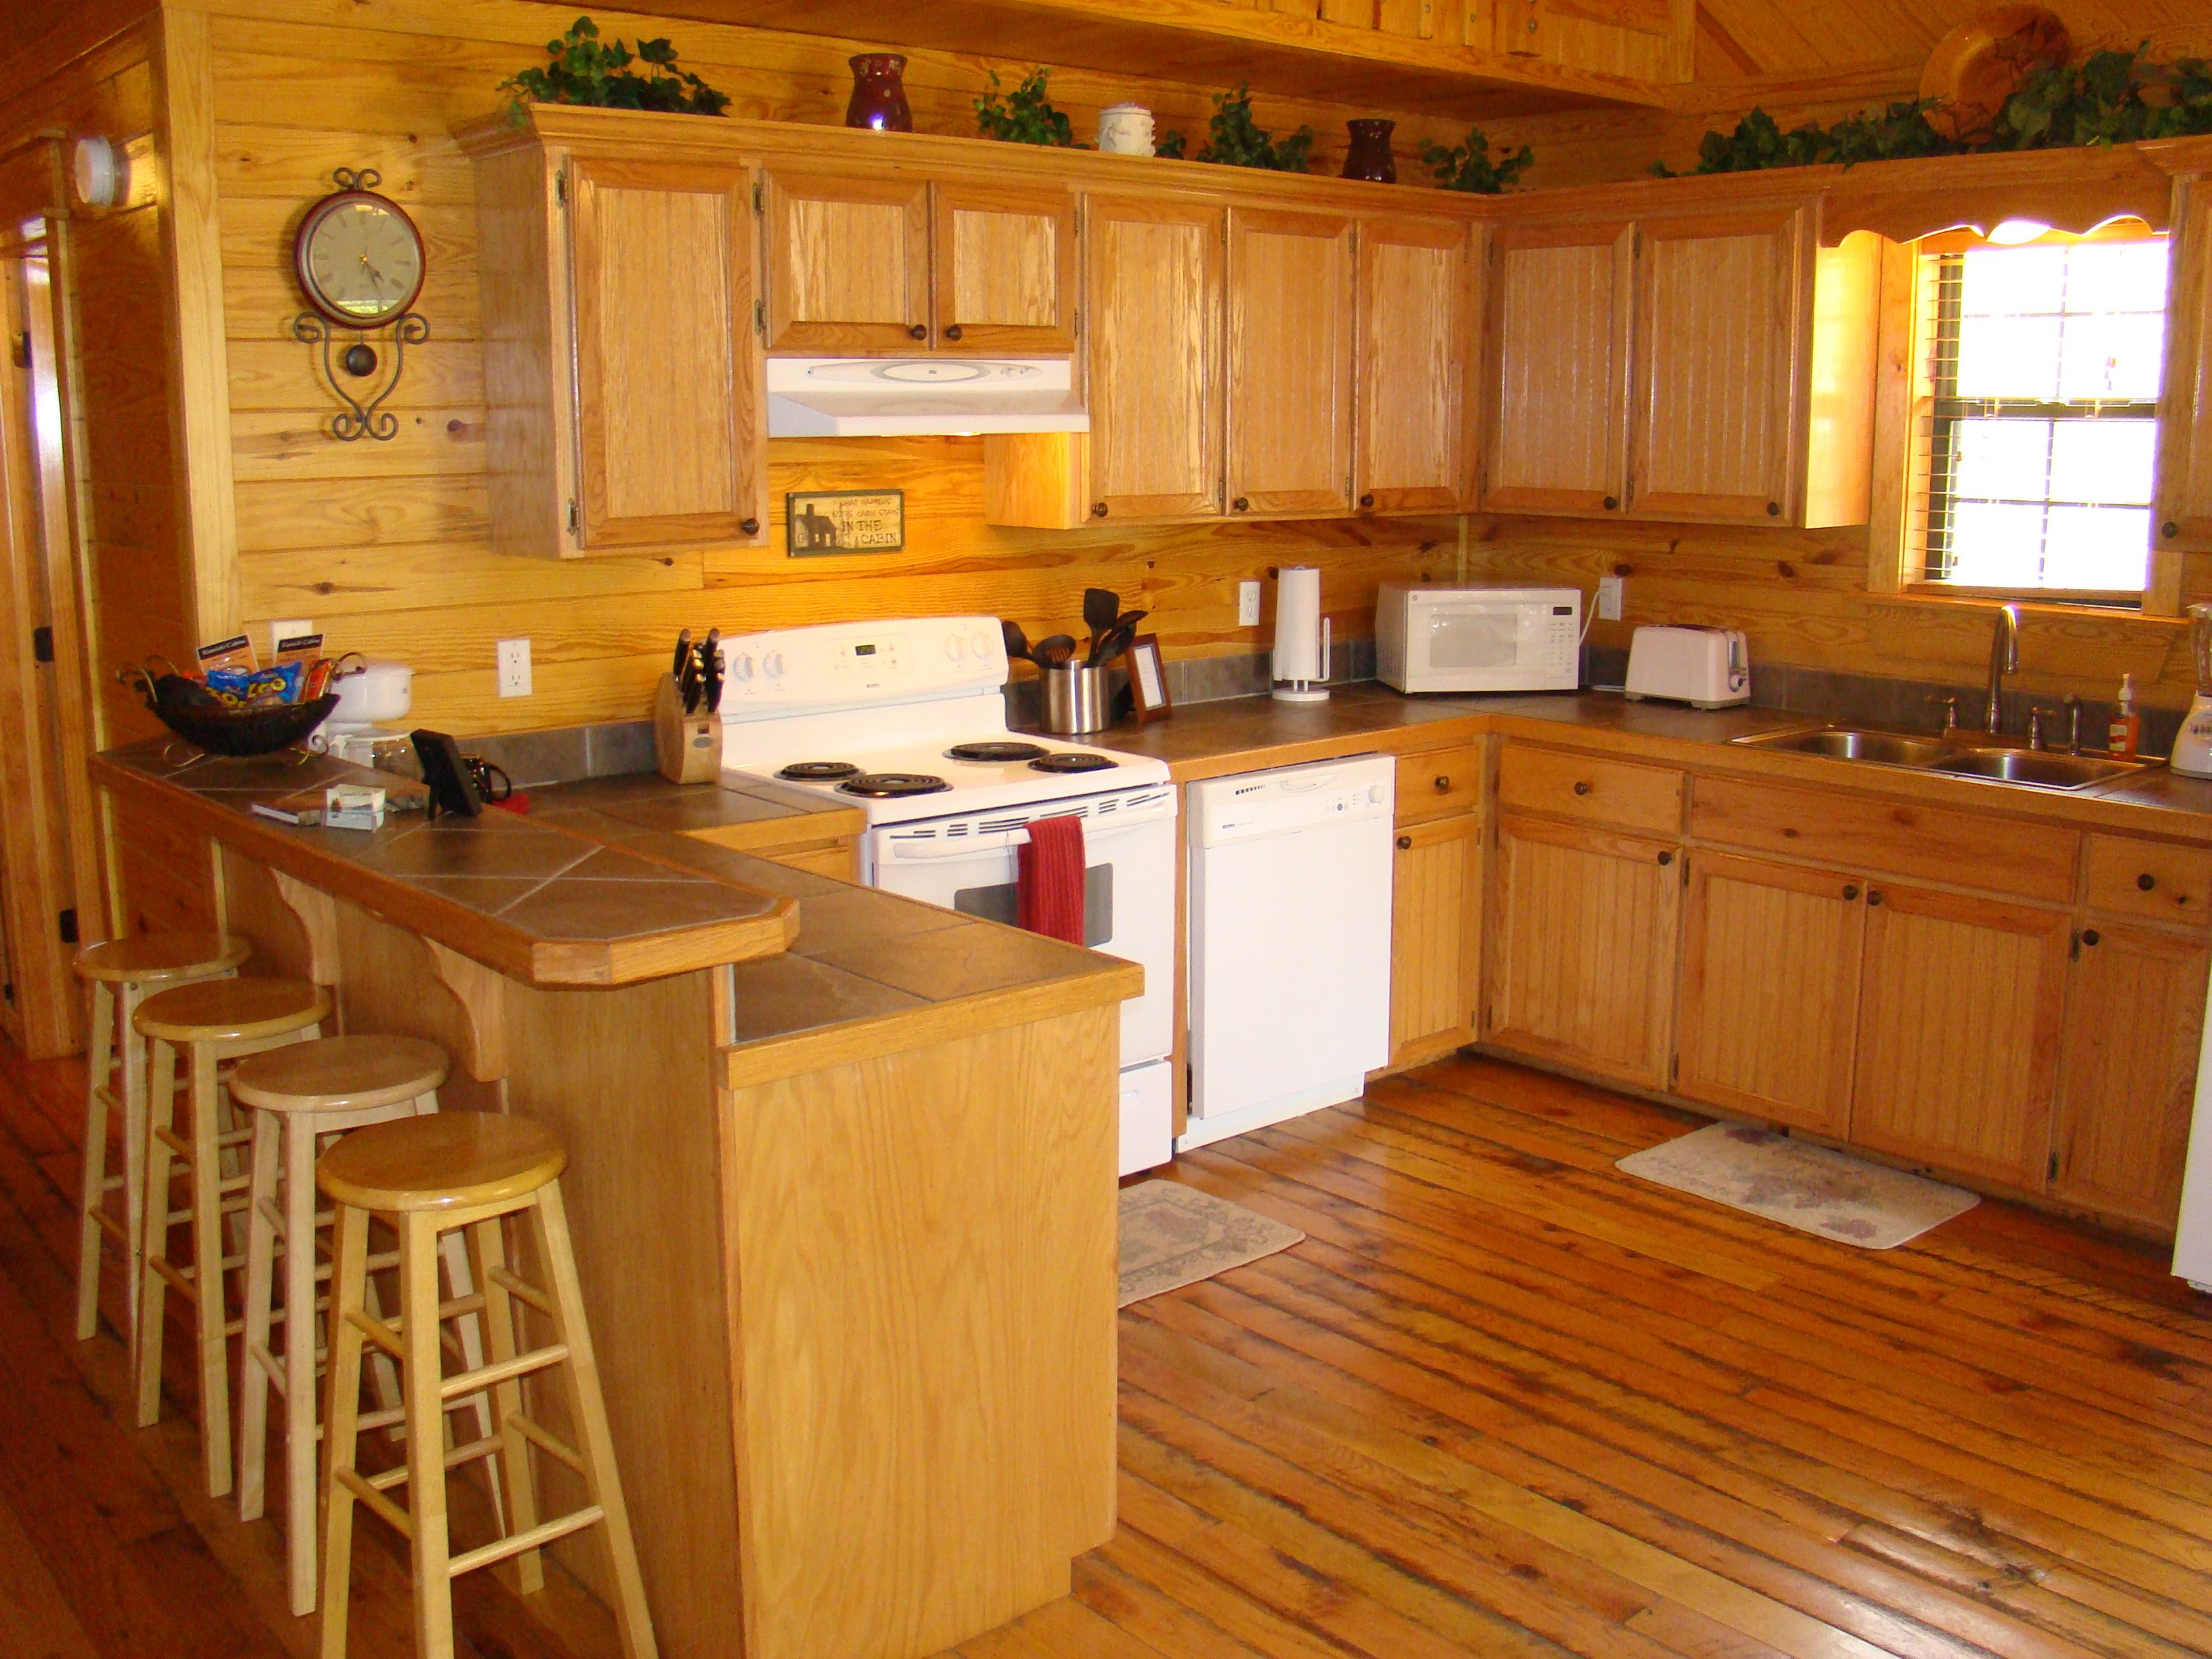 Kitchen plenty of space fully equipped southern spirit cabin